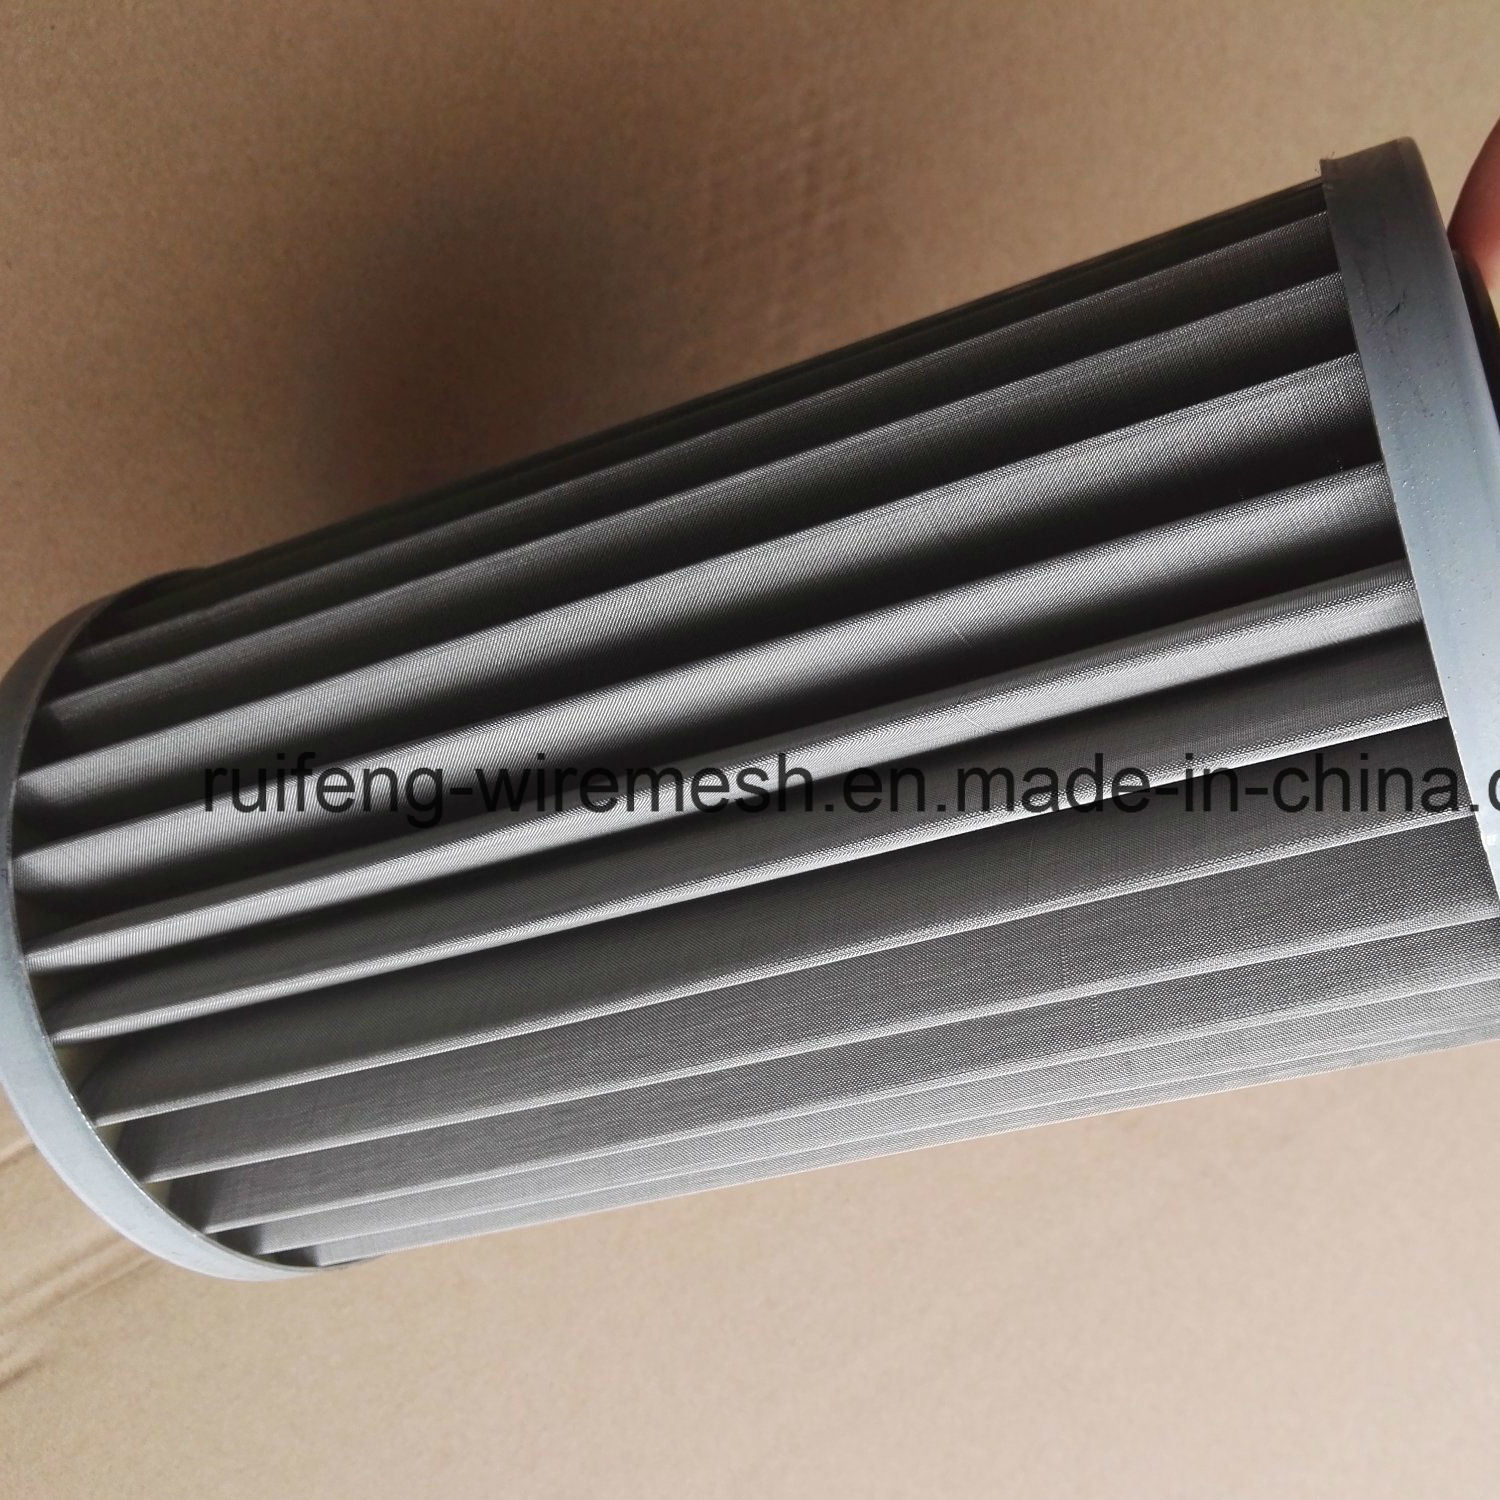 China Circular/Different Shapes Stainless Steel Copper Filter Wire ...